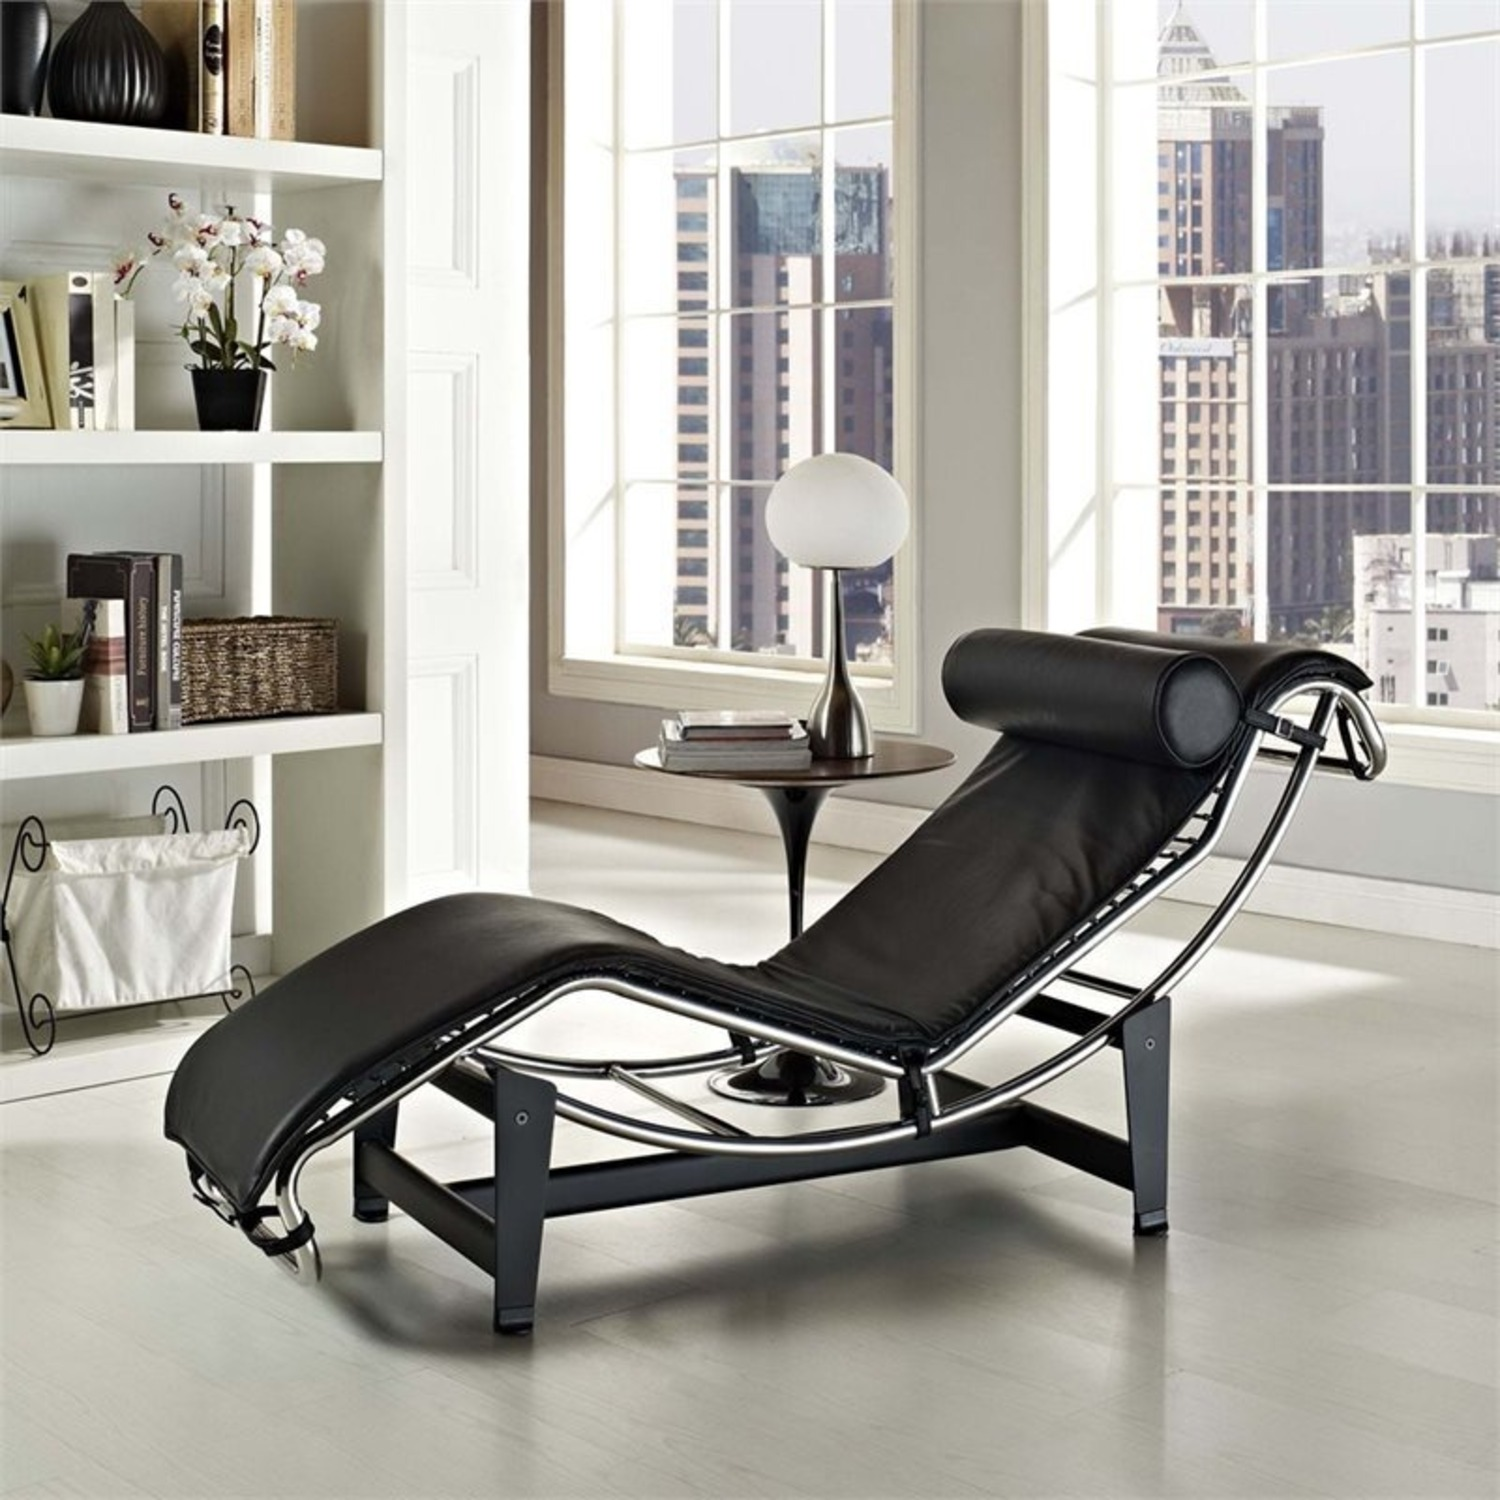 Chaise Lounge In Black Finish W/ Reclining Design - image-3